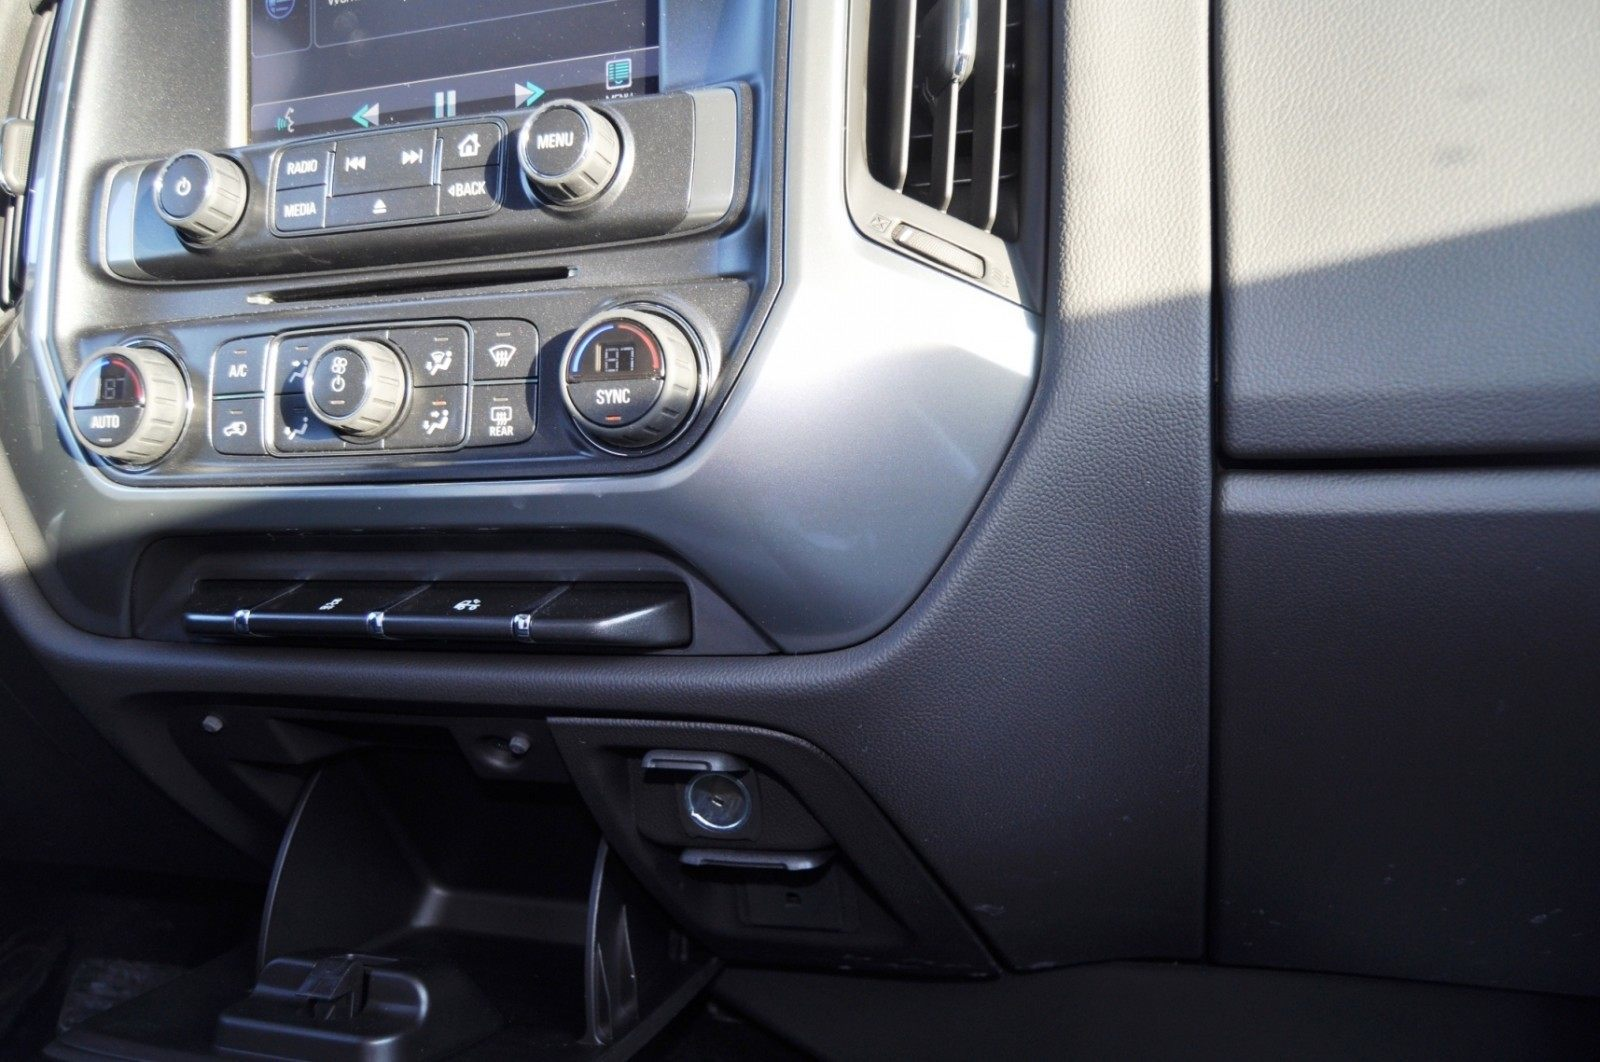 140MPH+ Chevy Tahoe PPV Coming as 2015 Model With Optional 4x4 and Far Better Cabin » Car-Revs